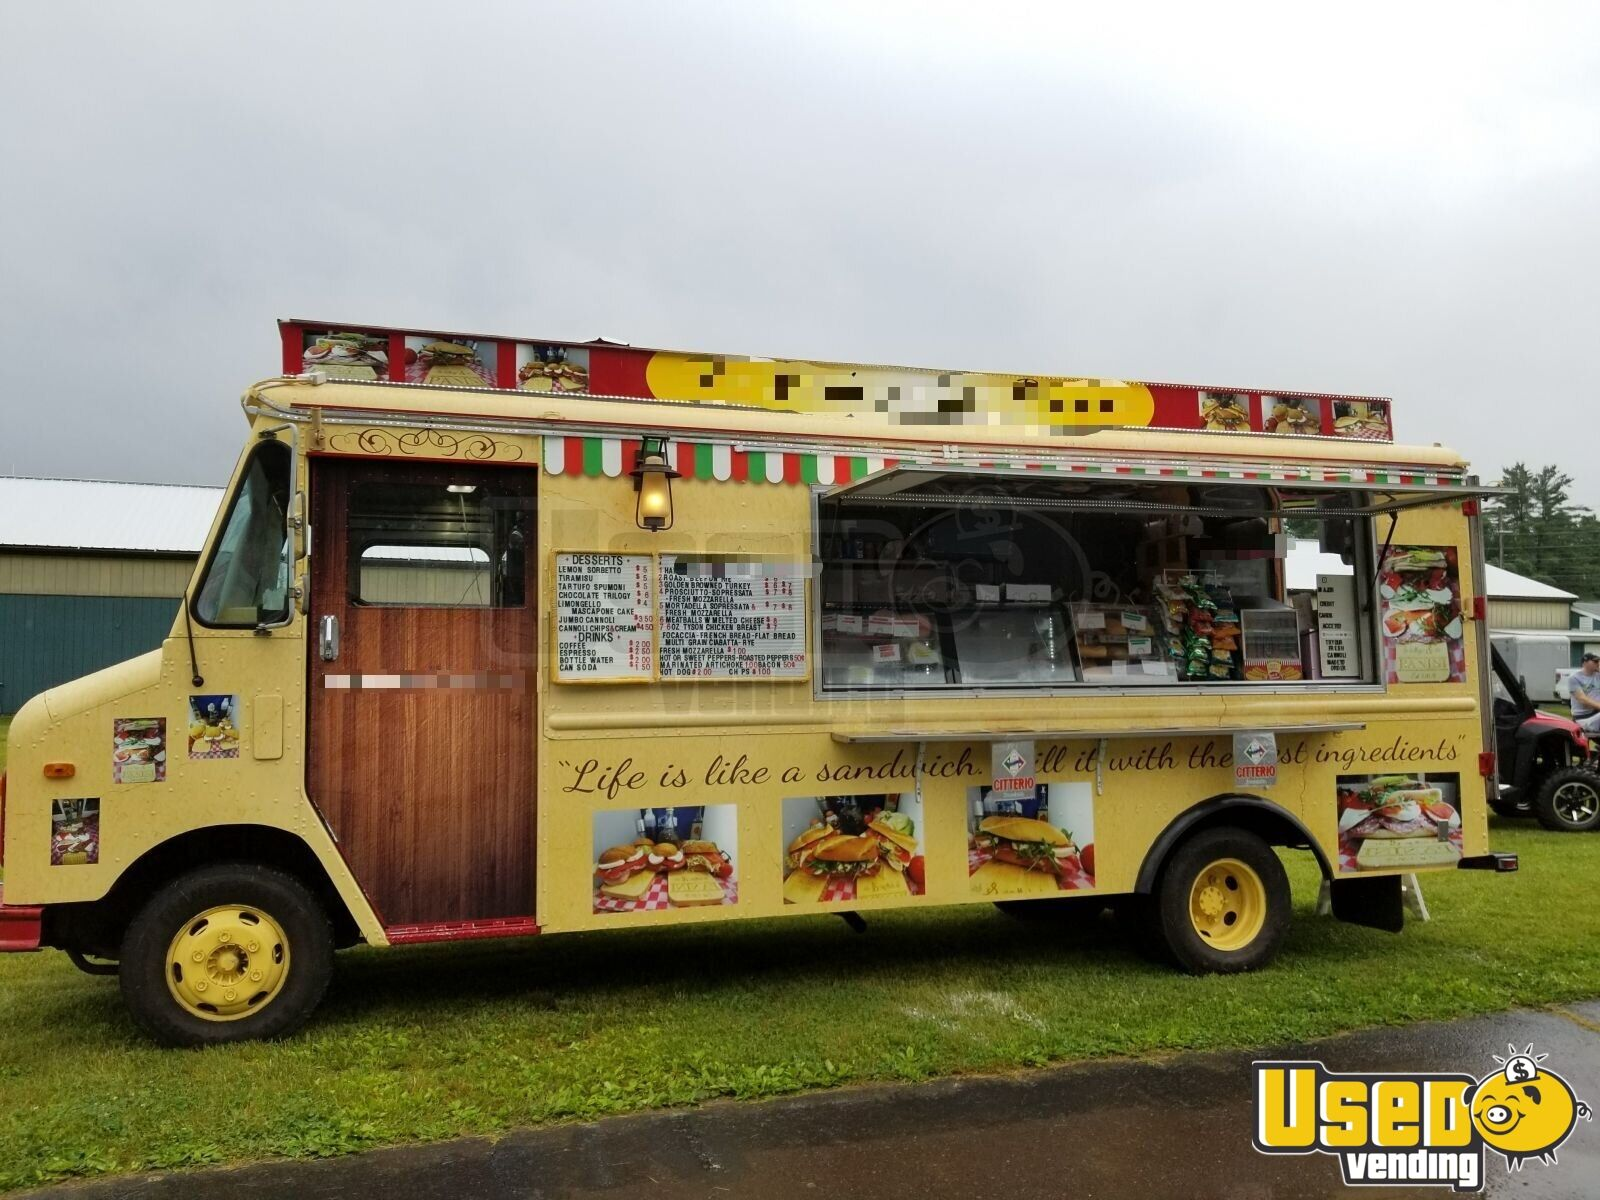 Loaded Gmc Box Truck Used Mobile Kitchen Diesel Food Truck For Sale In Pennsylvania